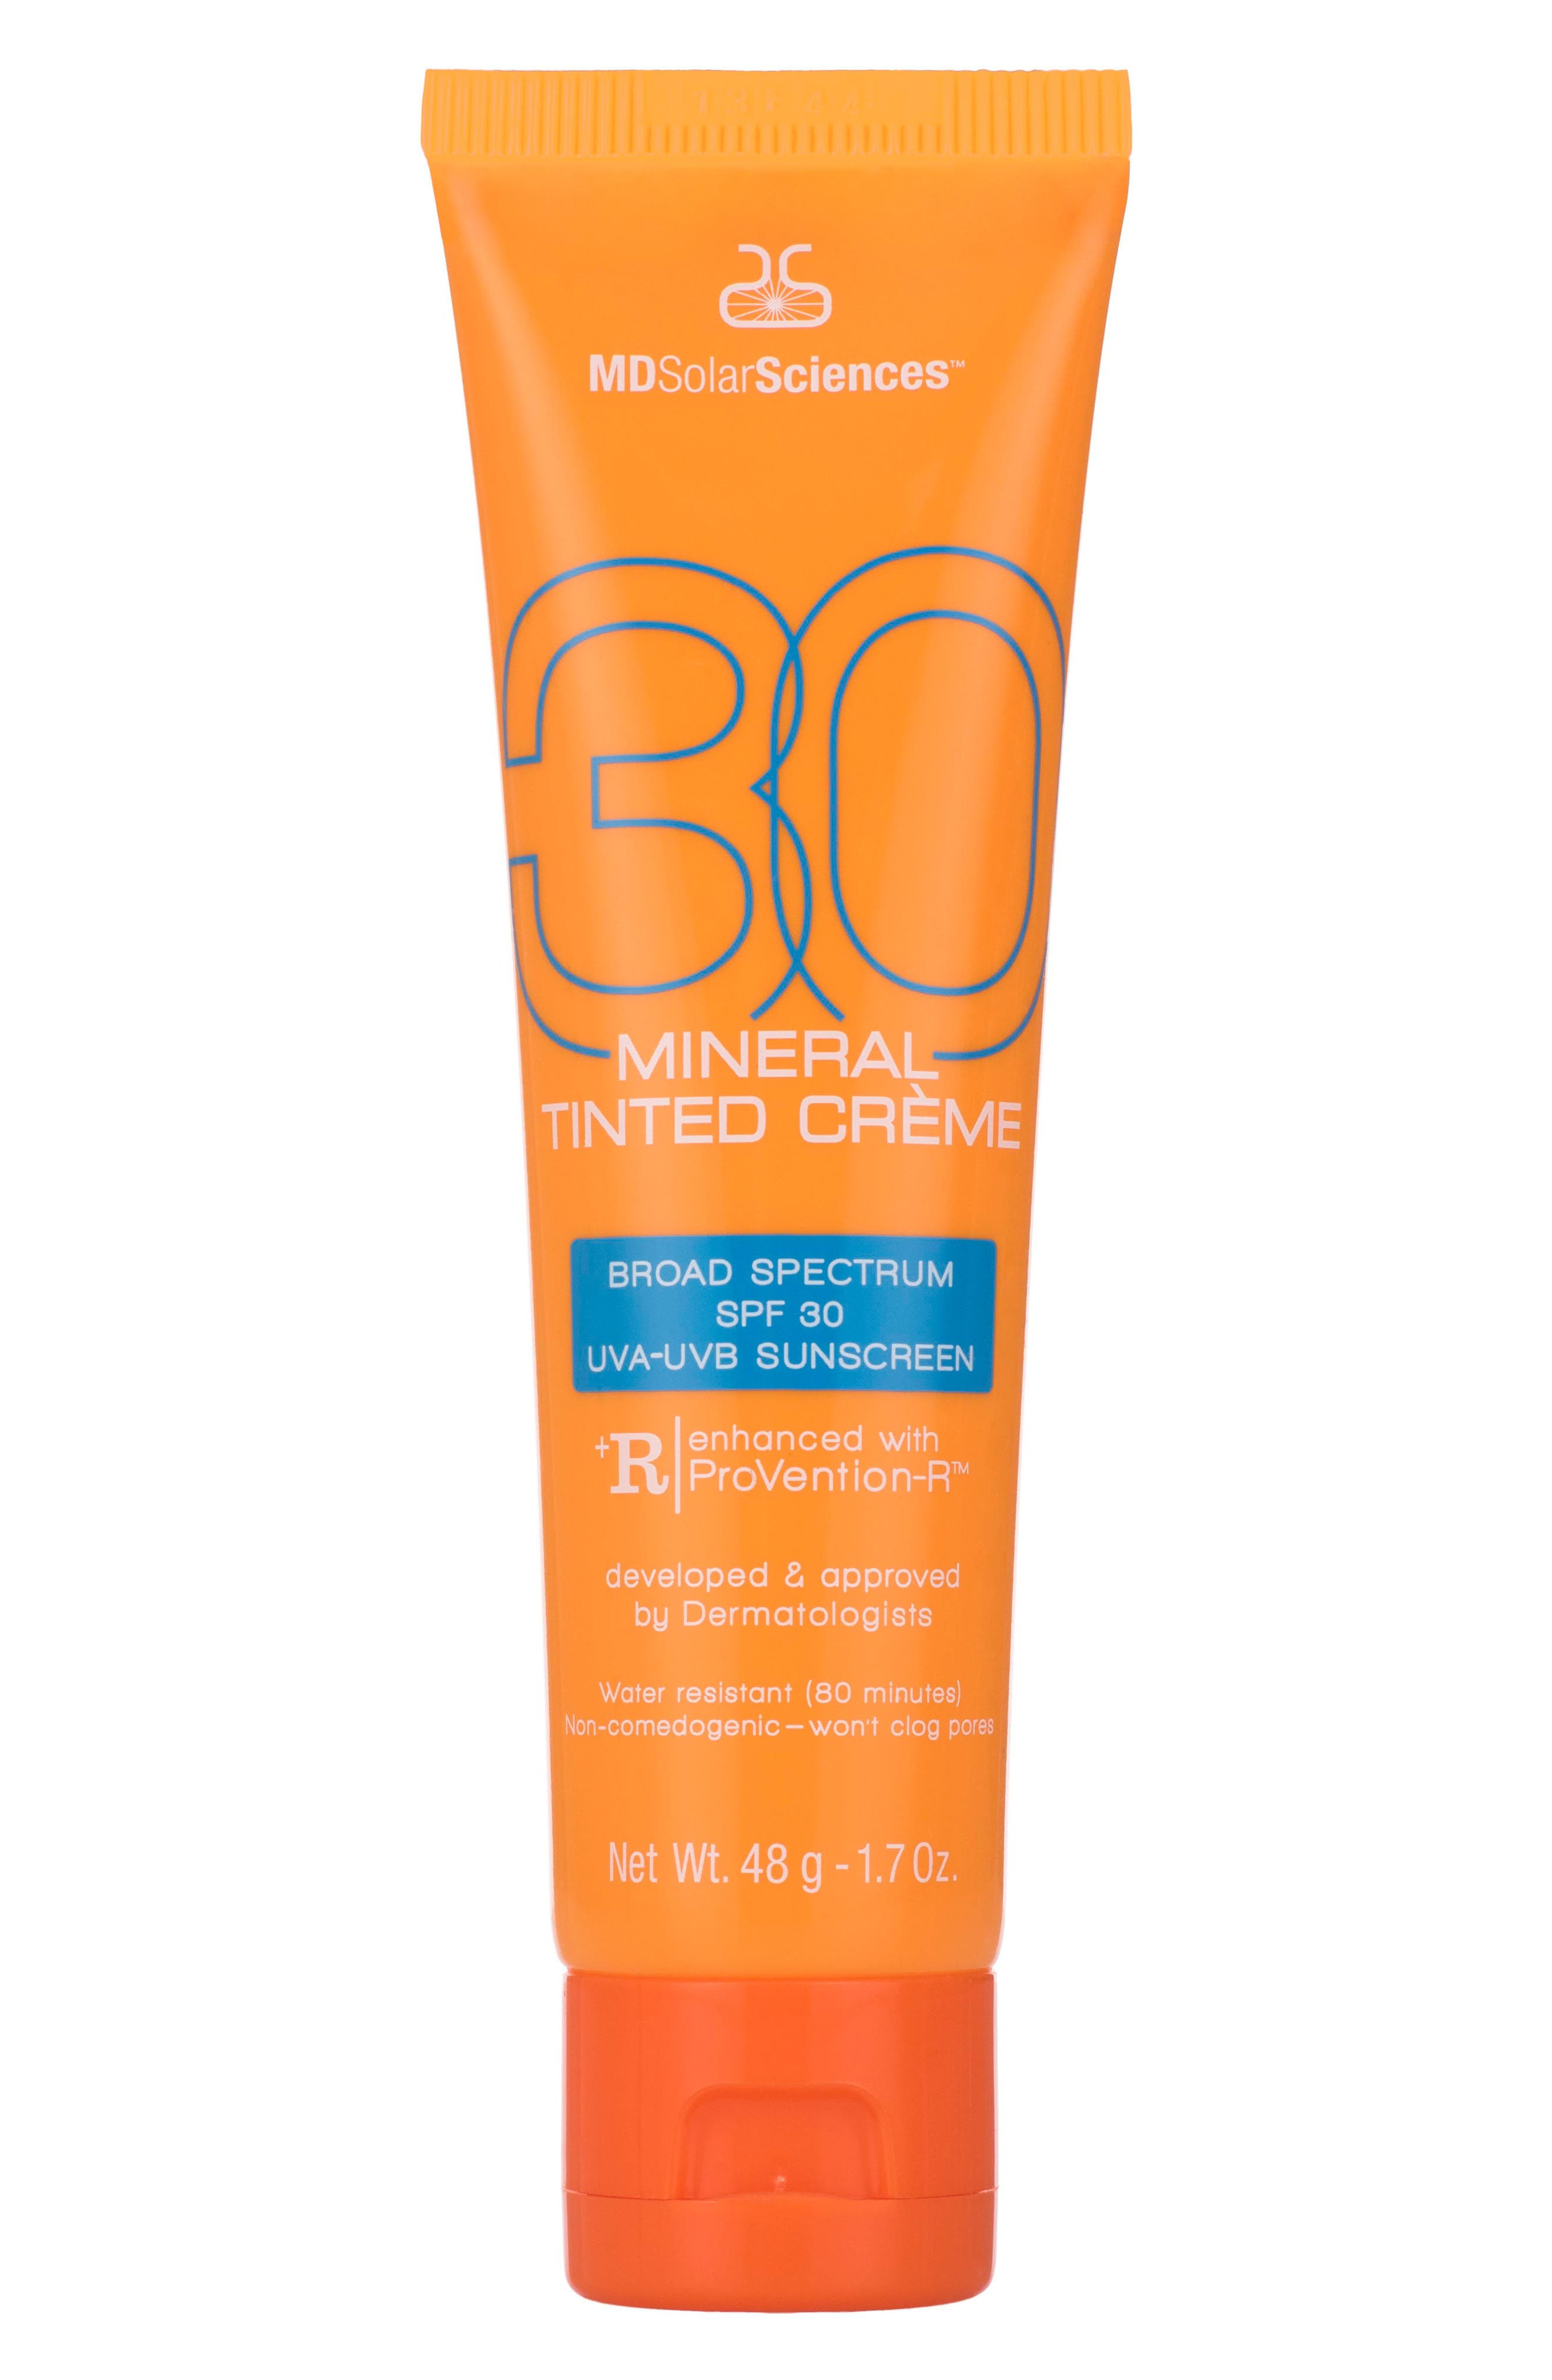 MDSolarSciences™ Mineral Tinted Crème SPF 30 Sunscreen